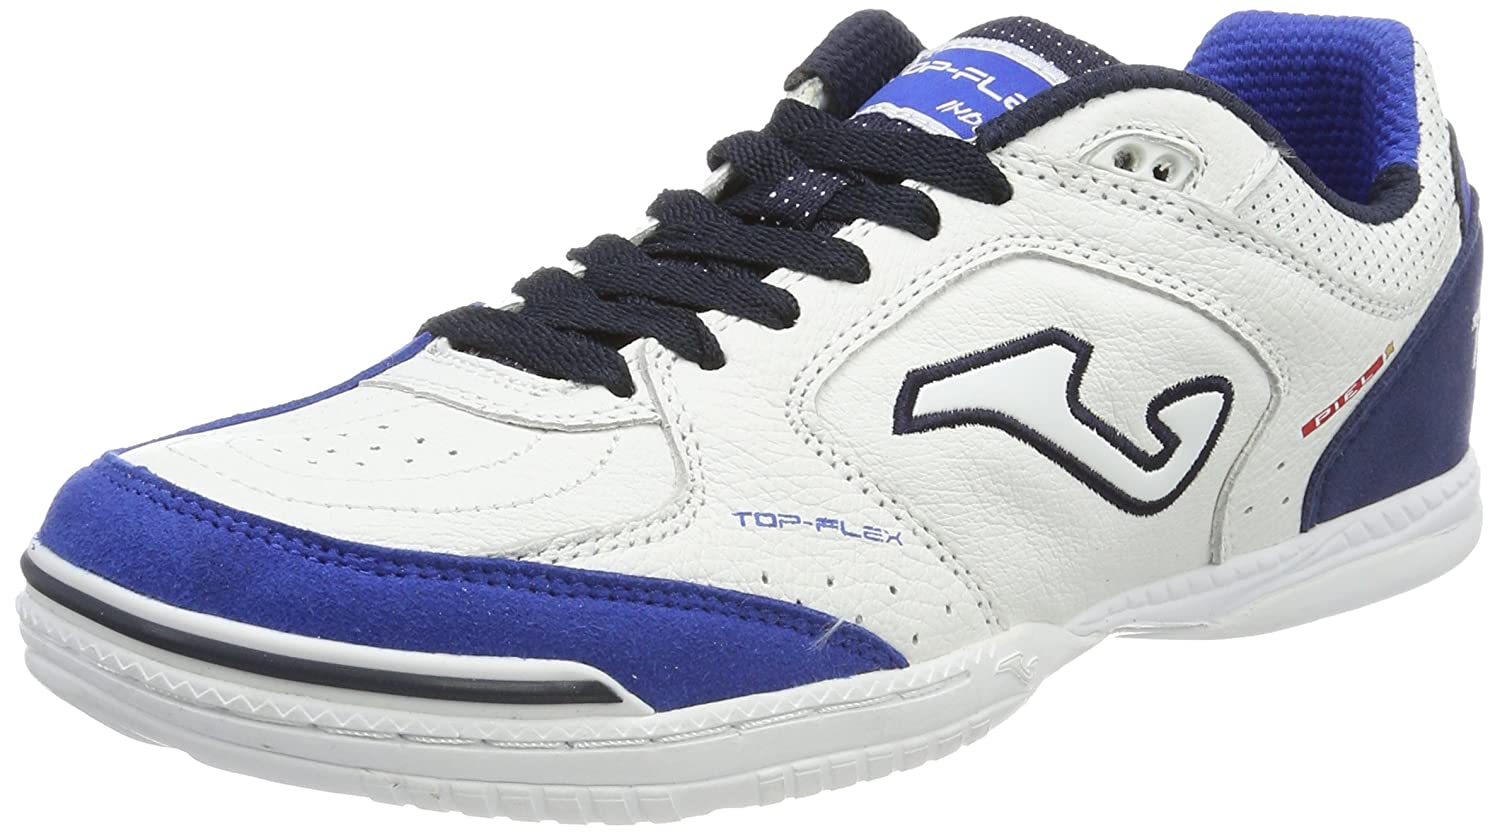 4a3593c47 Joma TOP FLEX Indoor Football Shoes - Men s 5-a-Side Shoes  Amazon.co.uk   Shoes   Bags